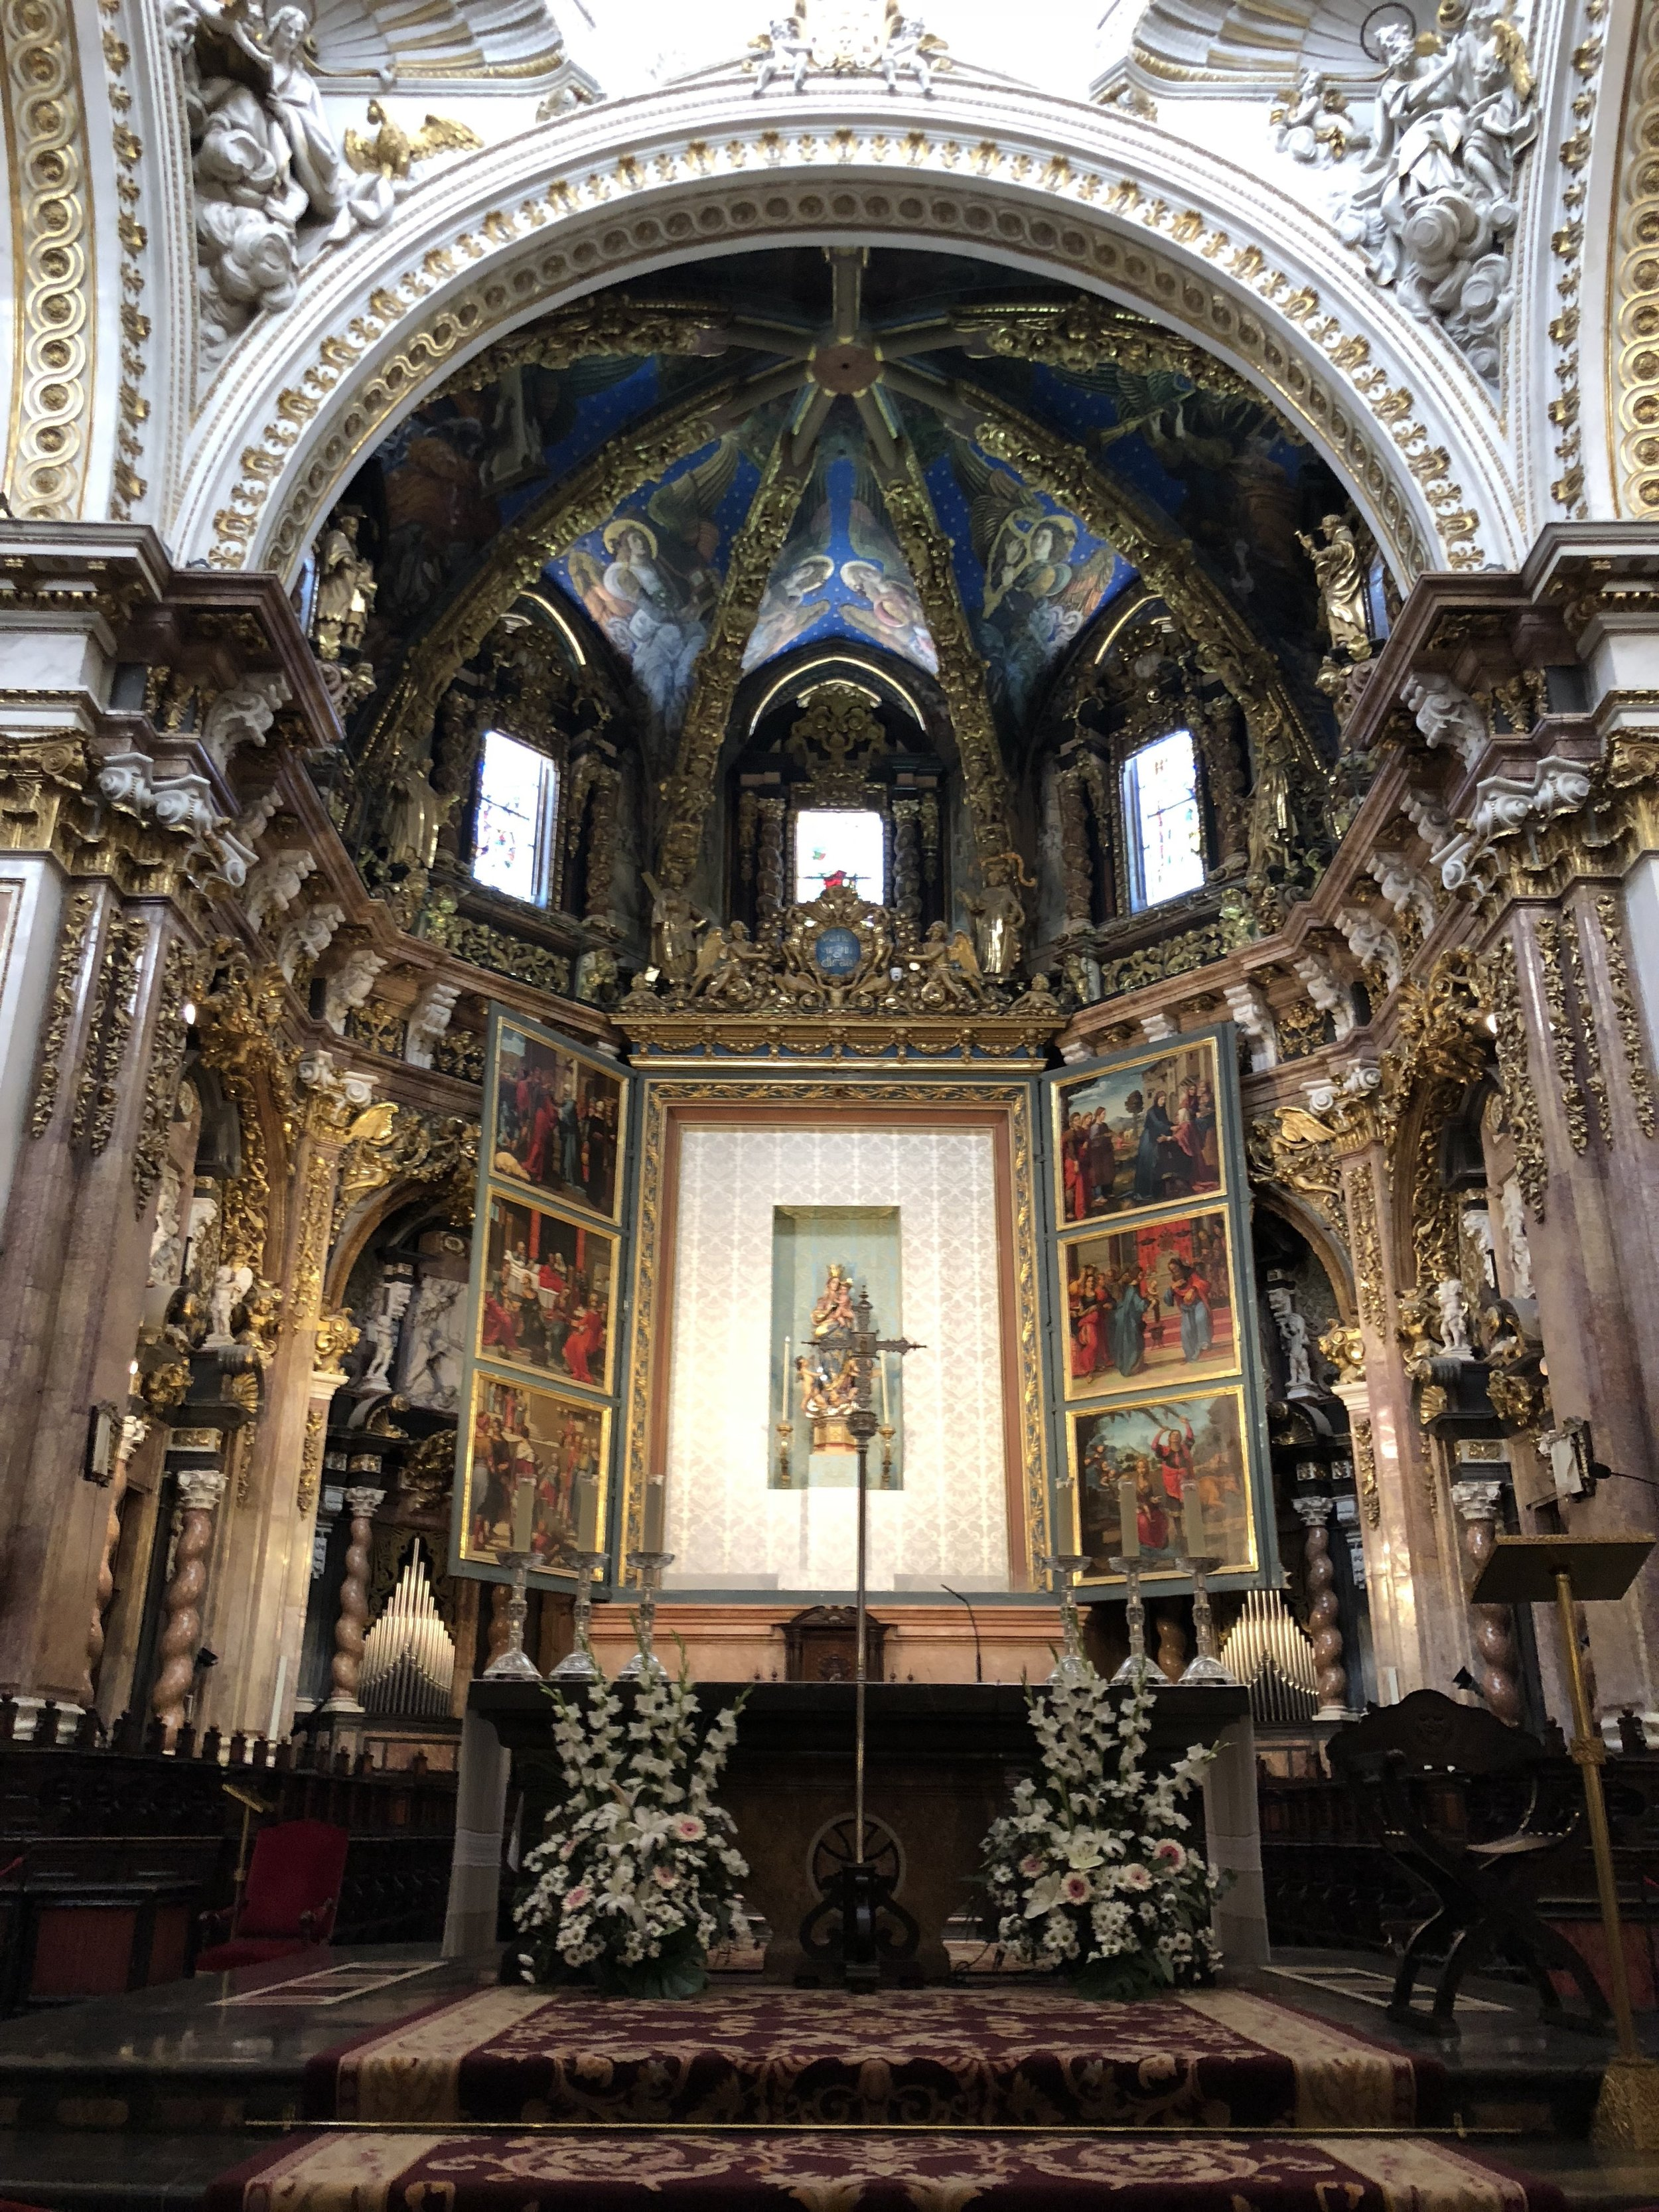 The Valencia Cathedral is stunning.